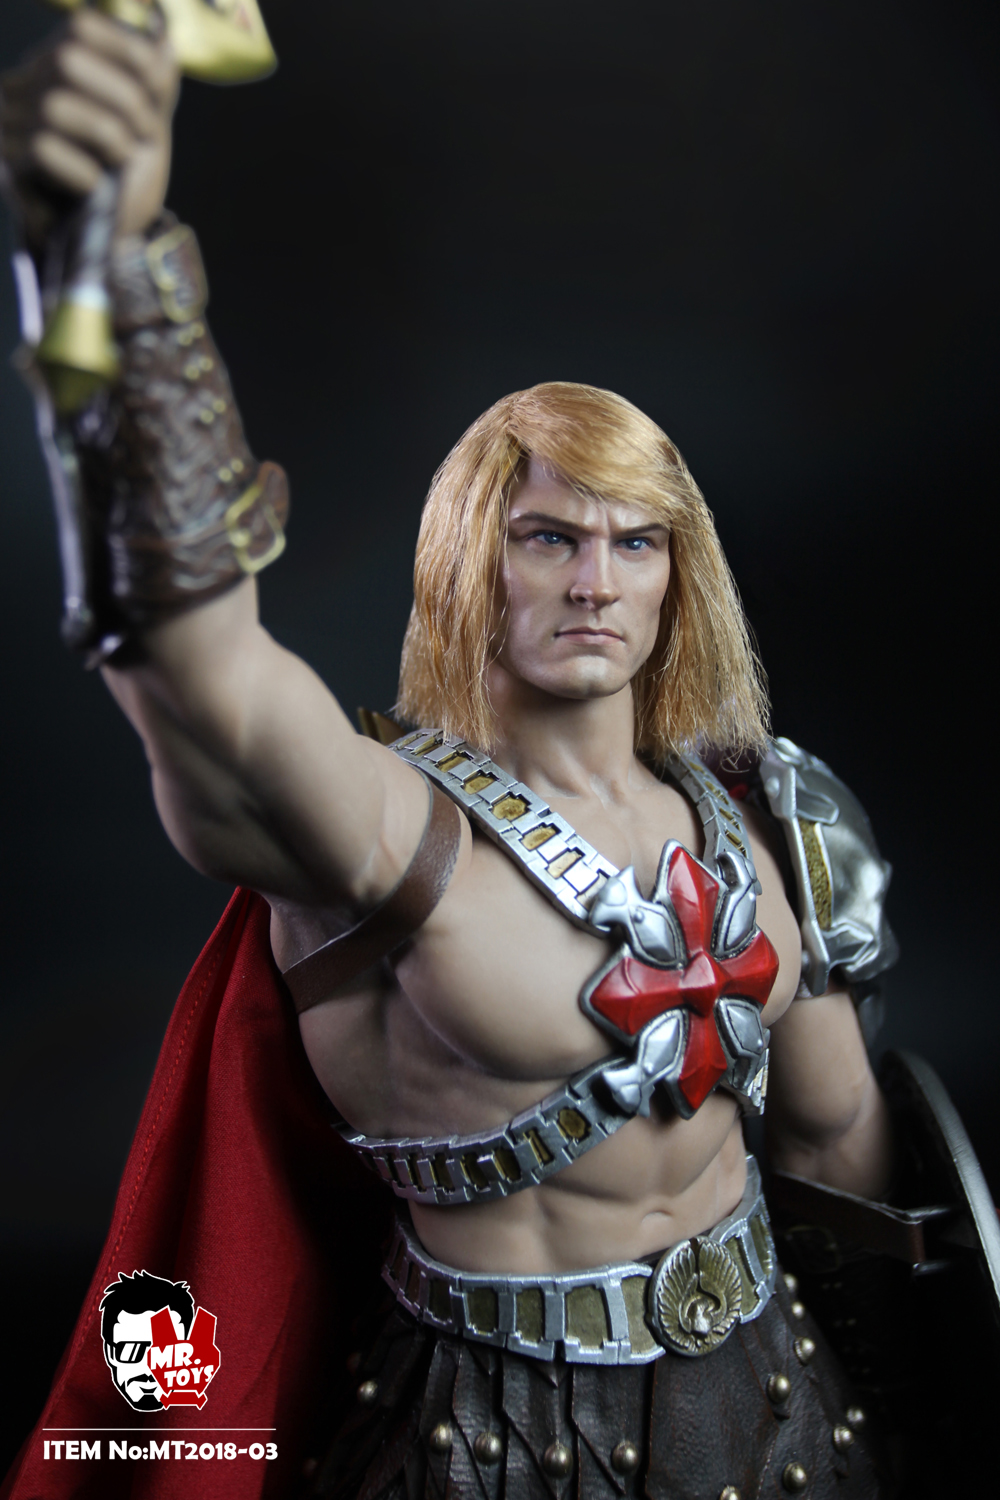 NEW PRODUCT: Mr. Toys MT2018-03 1/6 He-Man head carving costume set O1cn0122